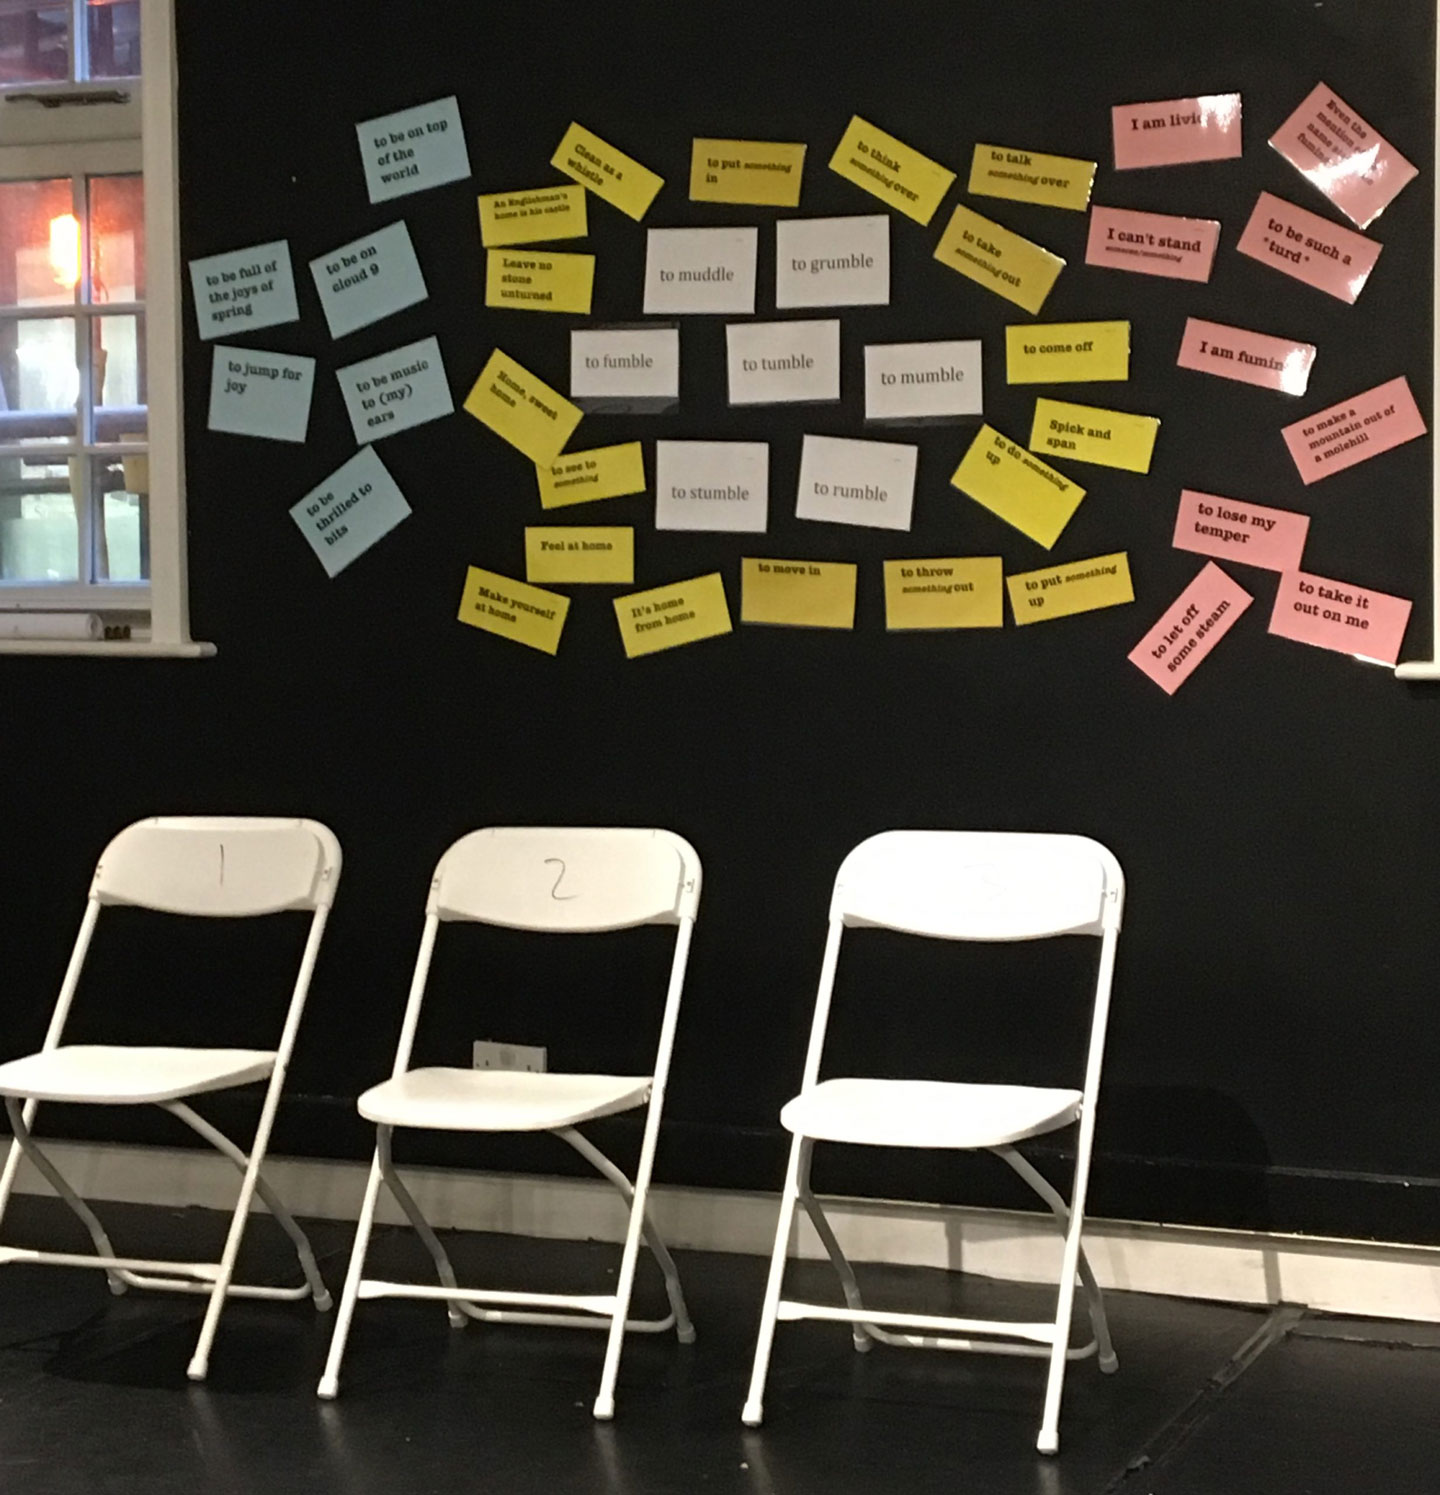 Chairs ready for a grammar game for practising the 3 future tenses in English